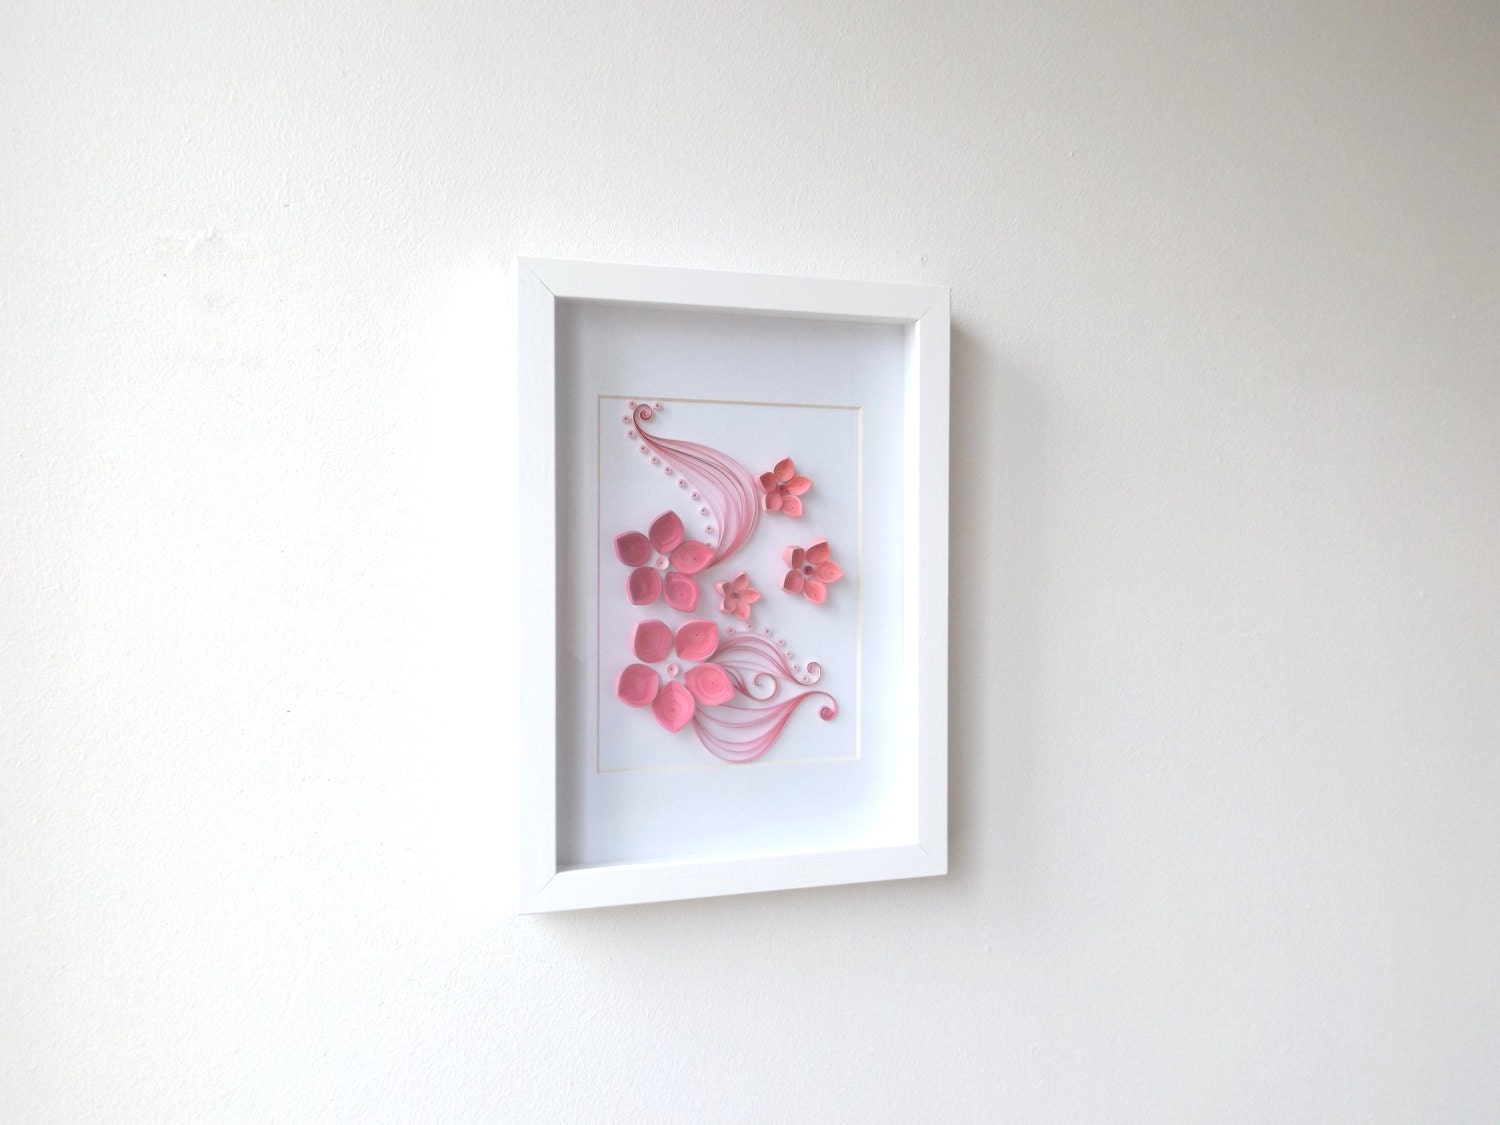 Wall Hanging Artwork : Paper quilling art frame hanging wall quilled